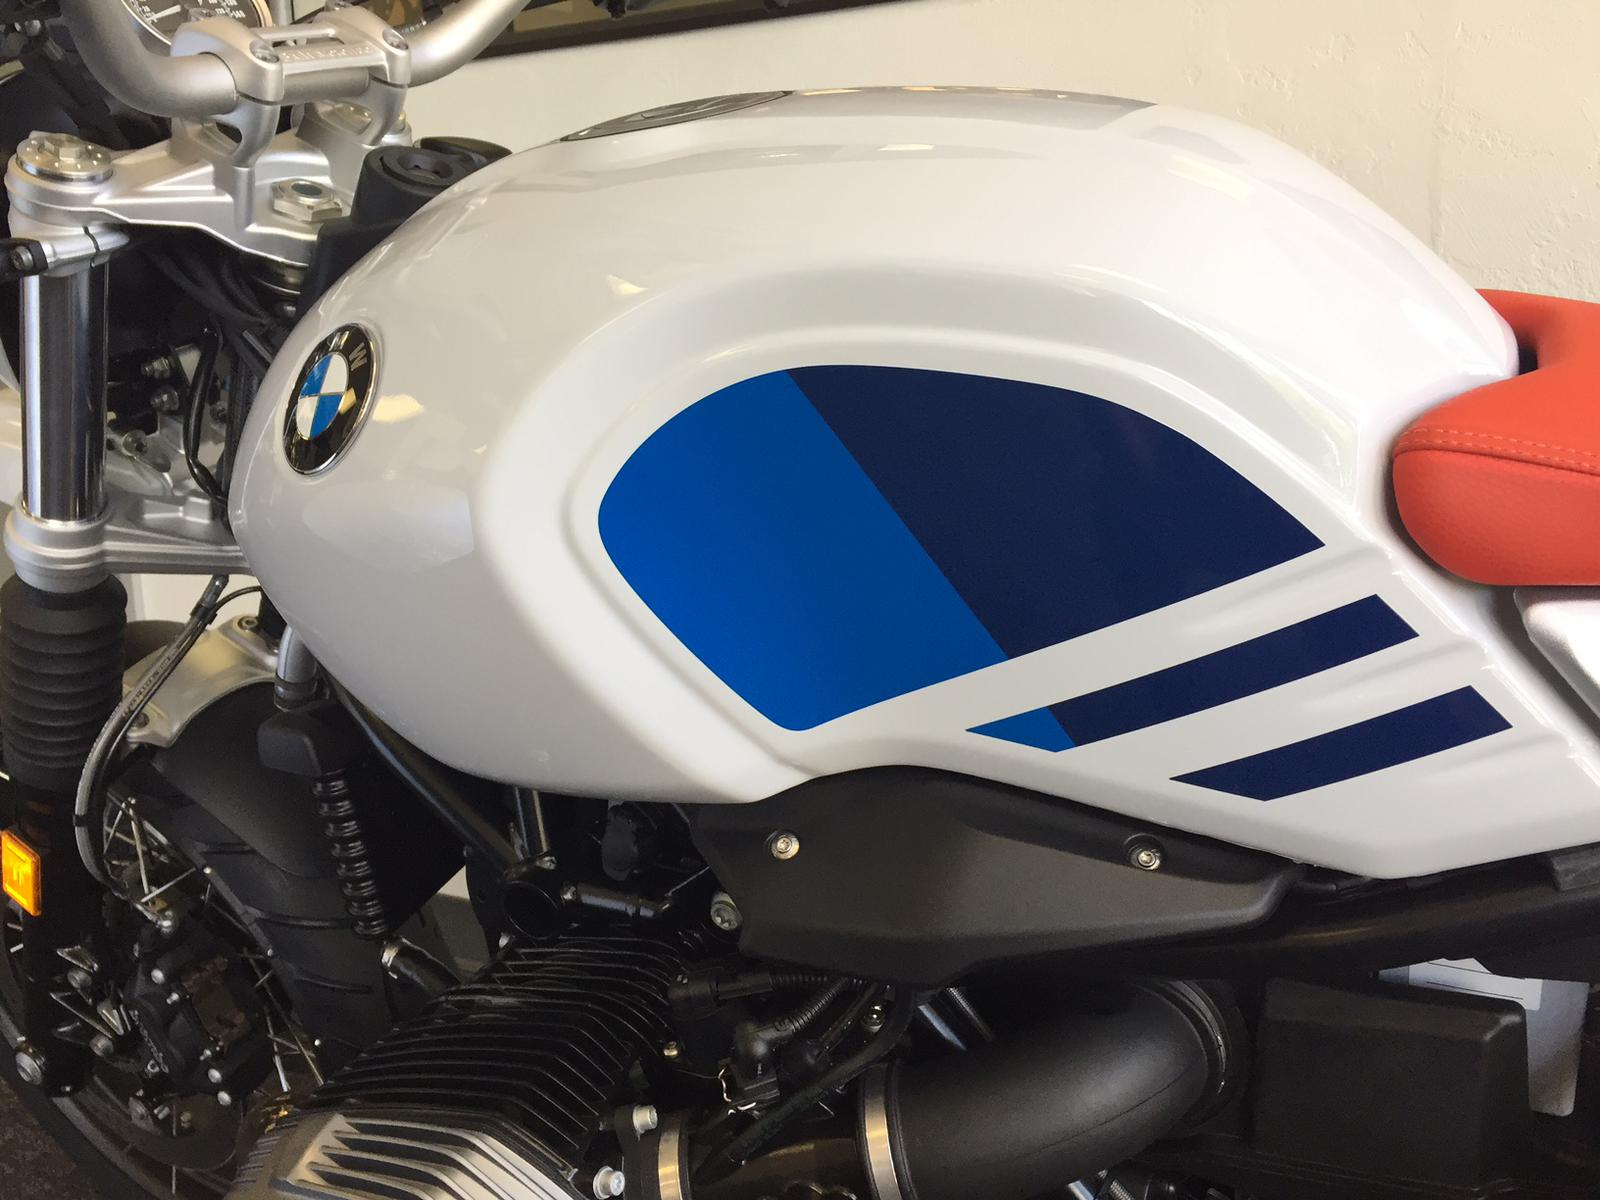 2018 bmw r ninet urban g s. unique urban bmw motorcycles of walnut creek 2018 r ninet urban on bmw r ninet urban g s